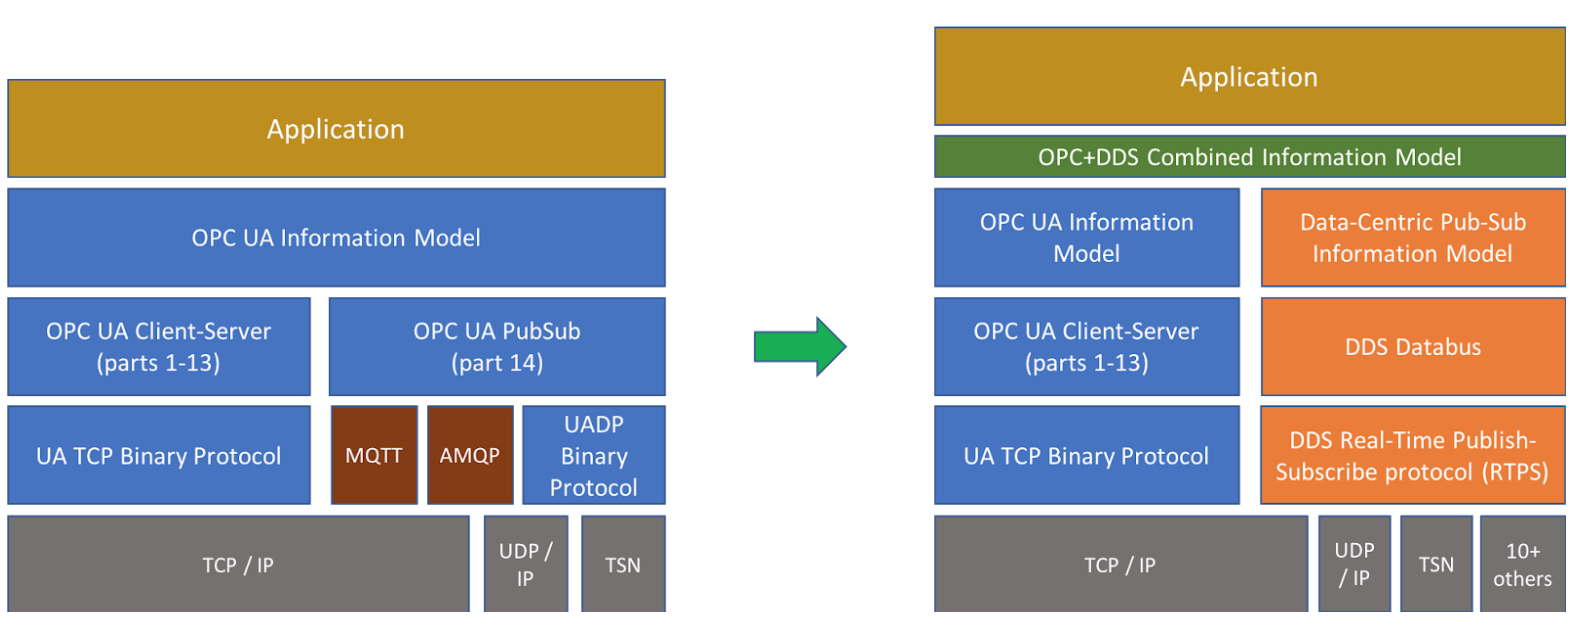 Two Approaches to Integrate DDS and OPC UA for Future